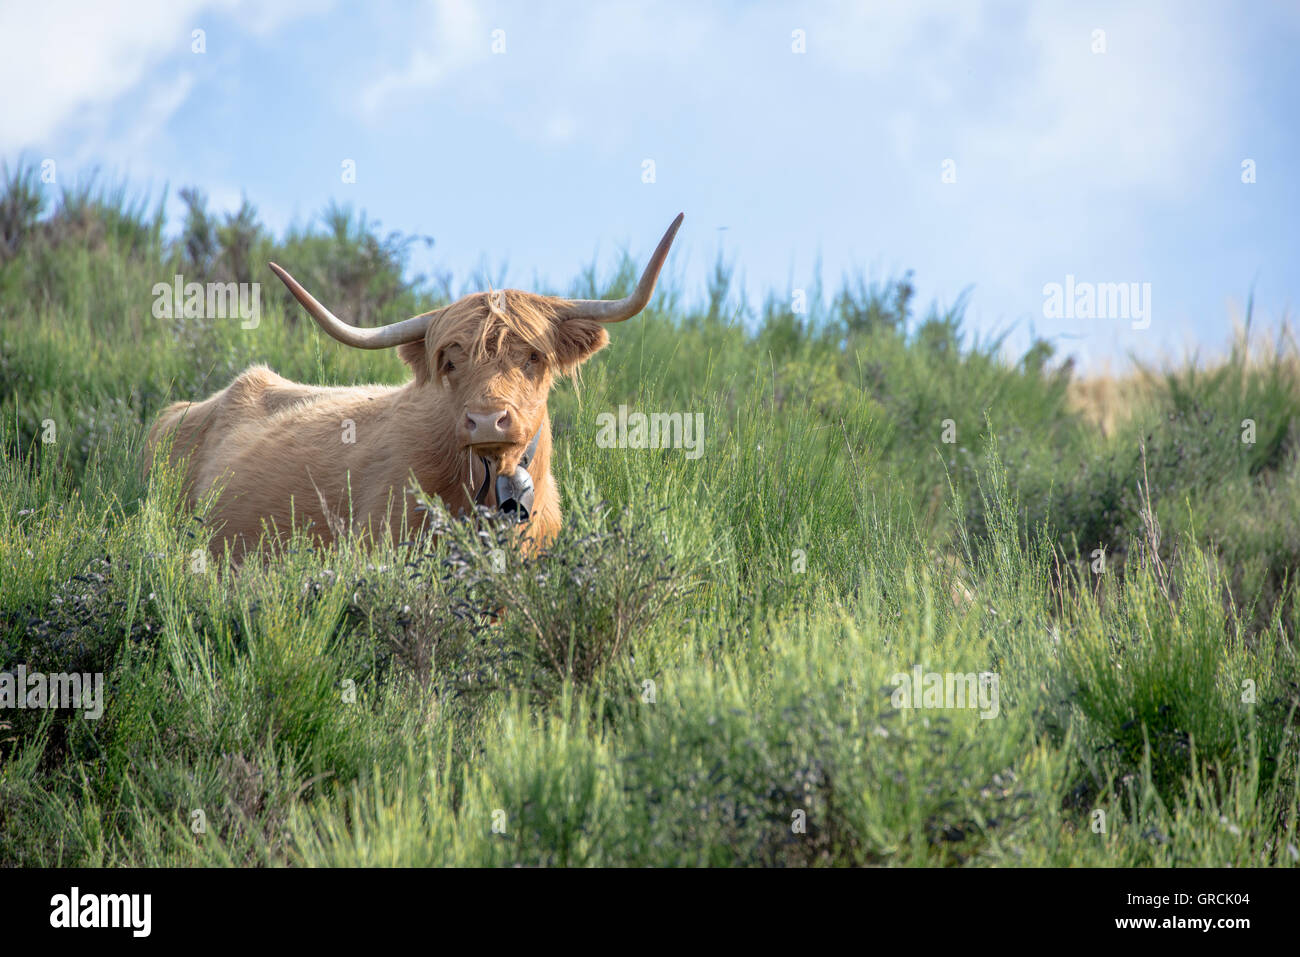 Yellow Scottish Highlandcow Lying In The Midst Of Gorse. Light Blue Sky, White Clouds In The Back. Cowbell, Large - Stock Image